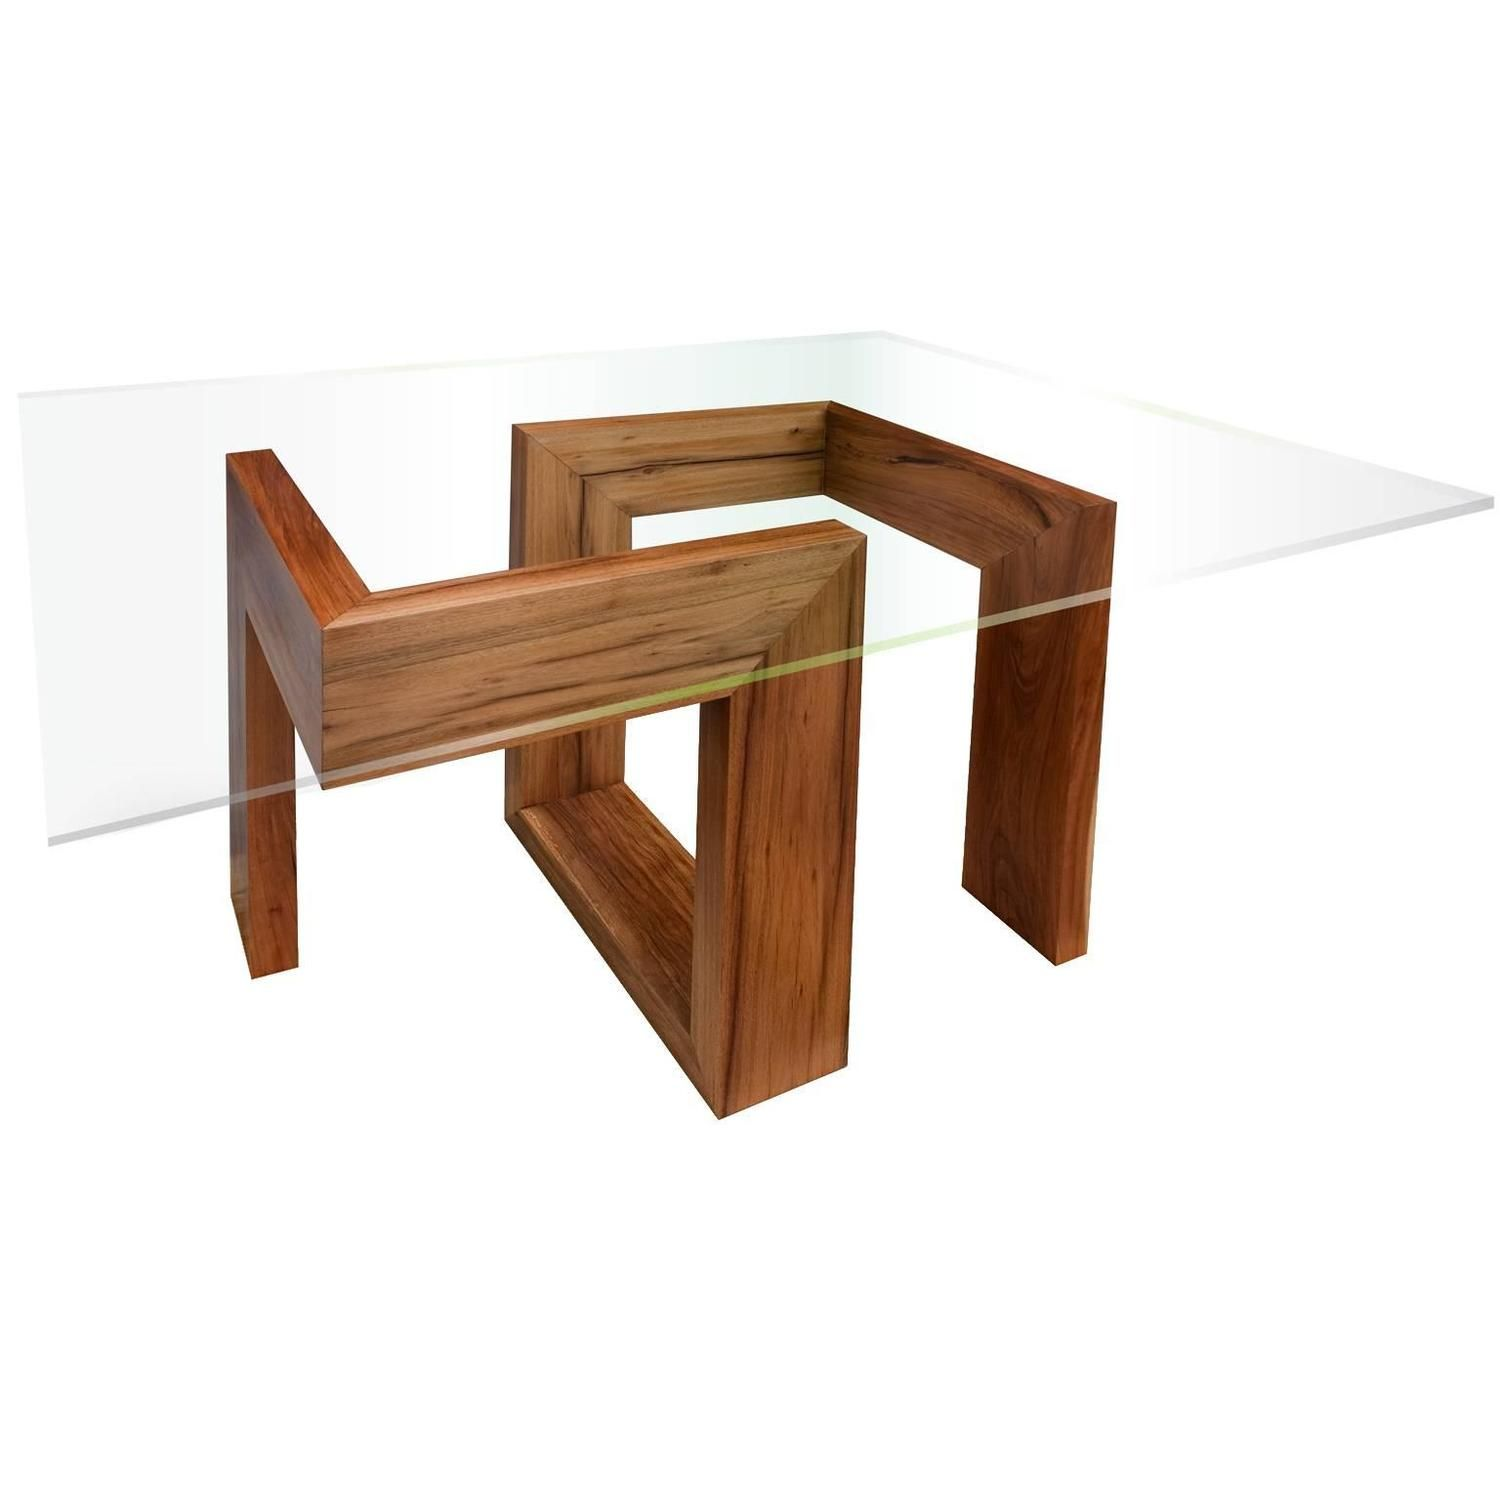 Modern 21st Century Solid Timber Table With Glass Top Proyectos